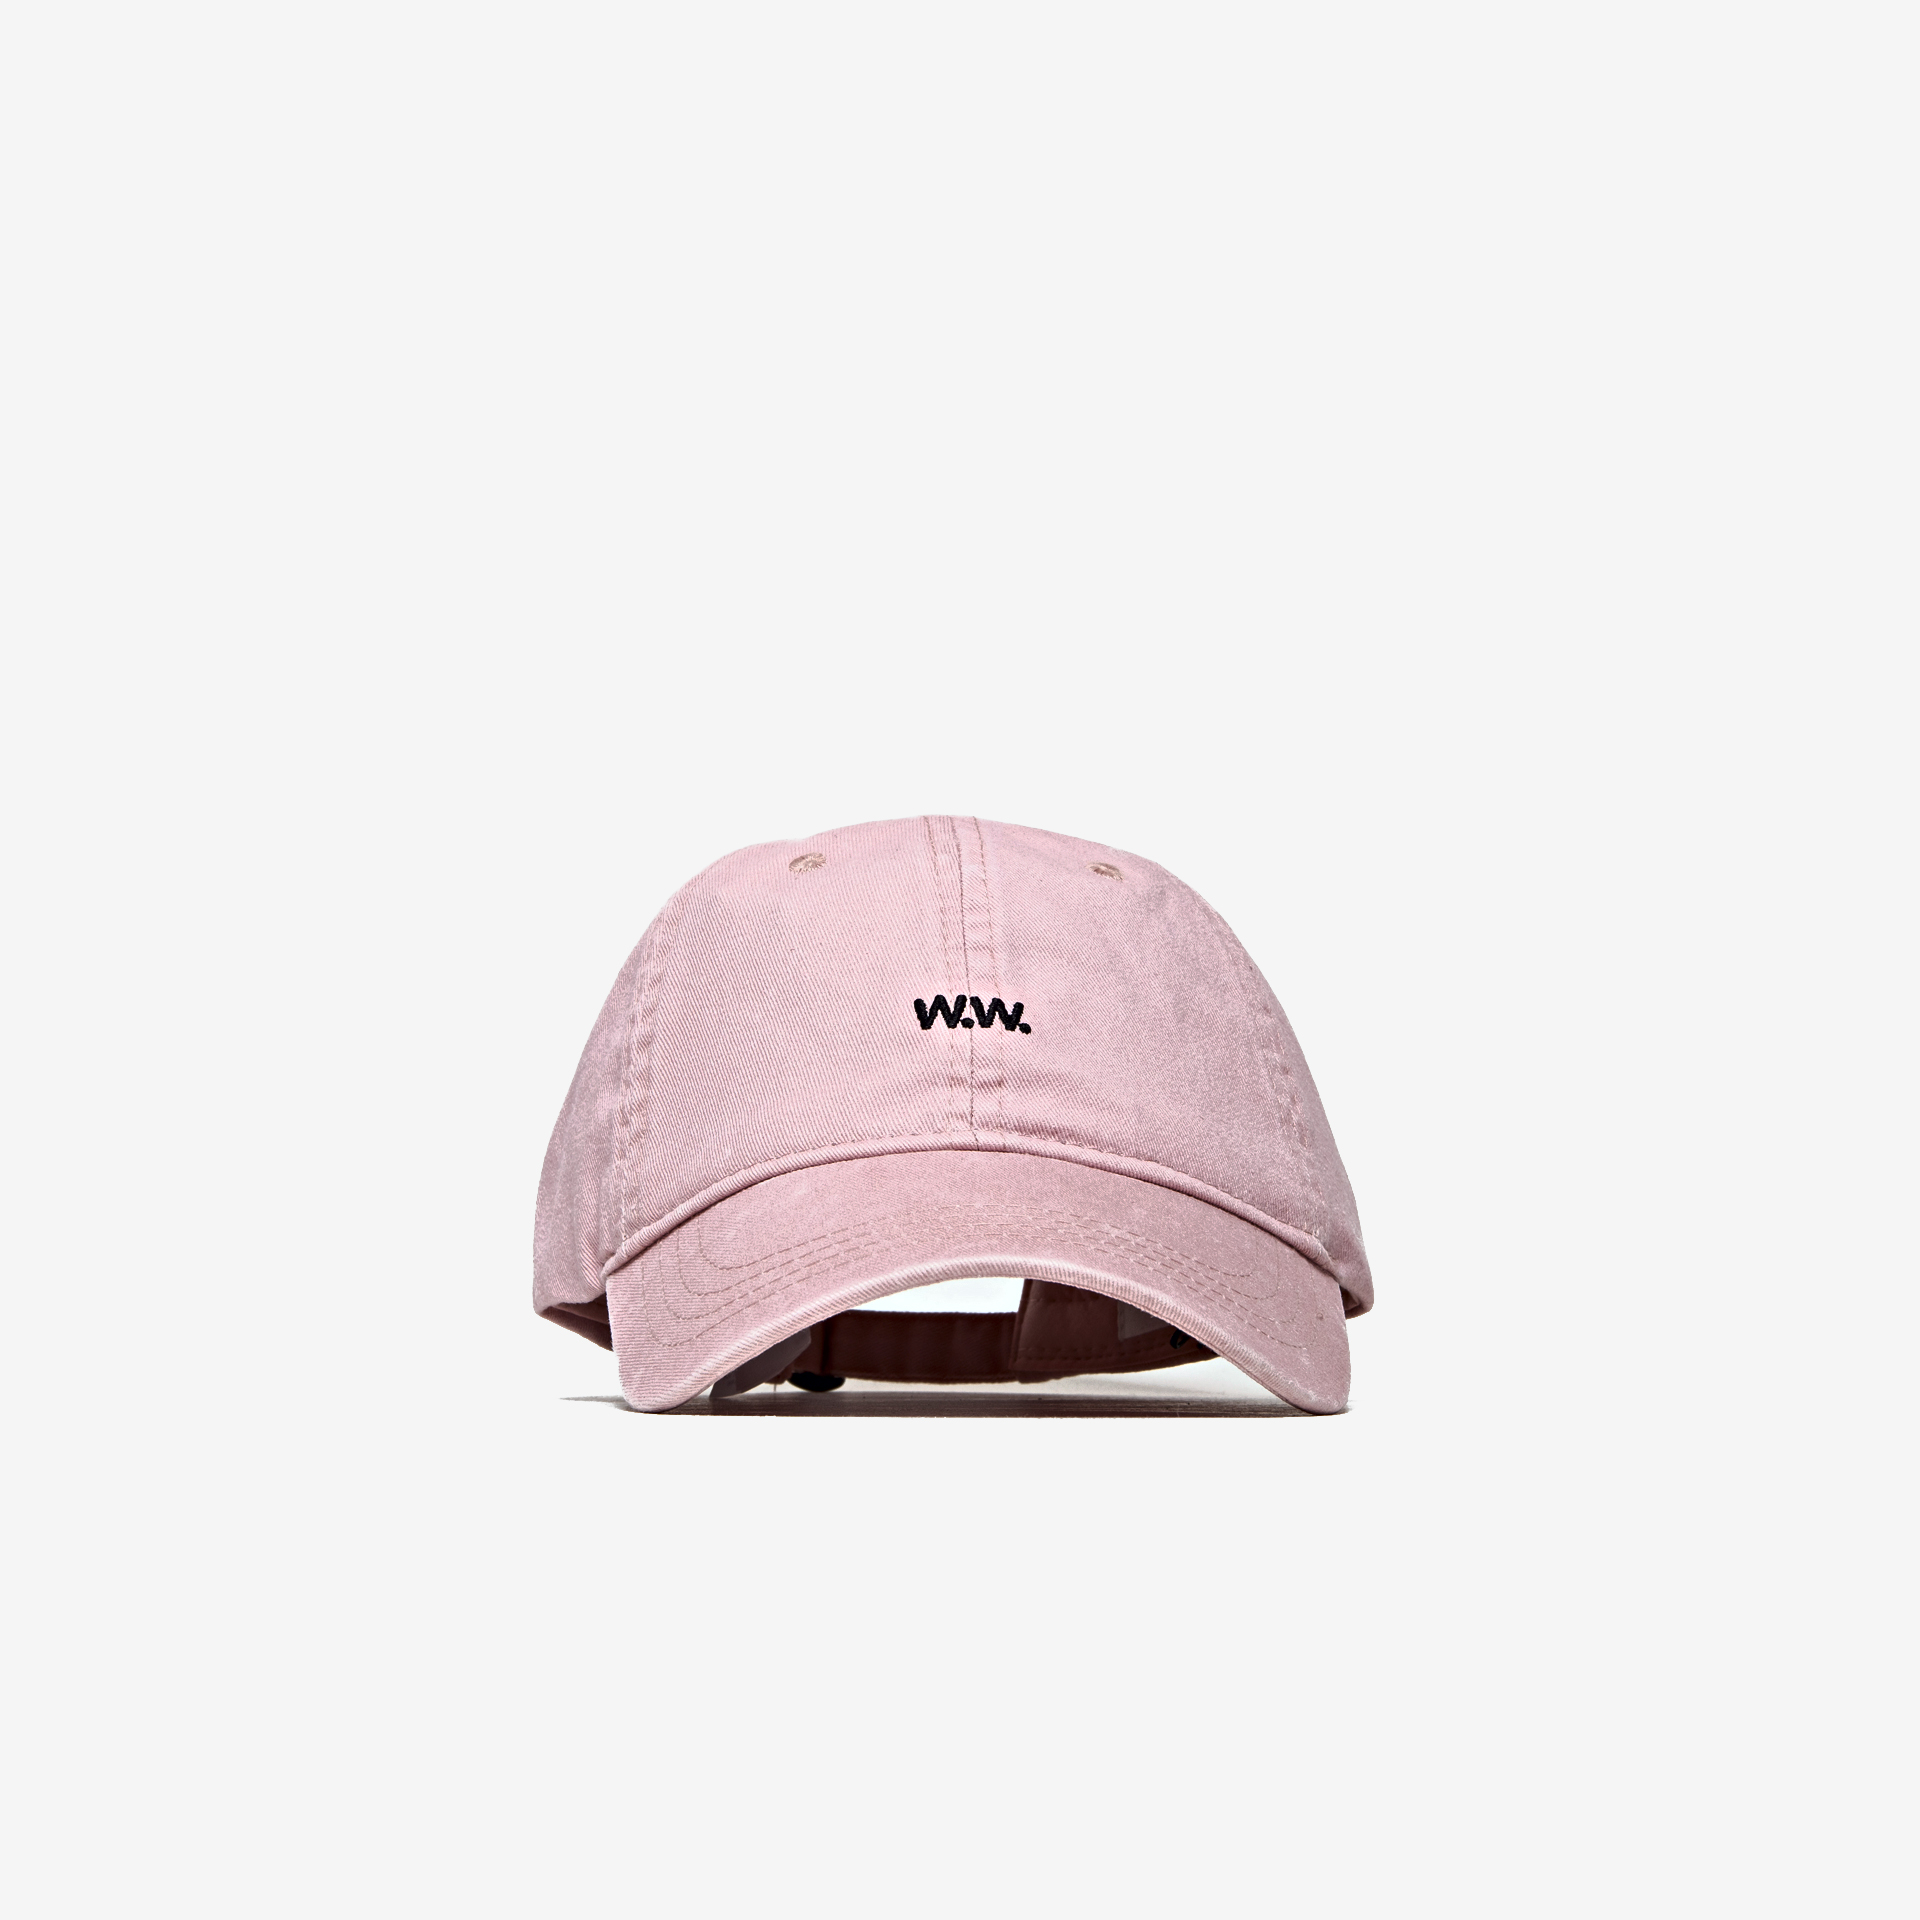 6197e9f8a47954 Buy Wood Wood Low profile cap - Red Pink   11810803-7